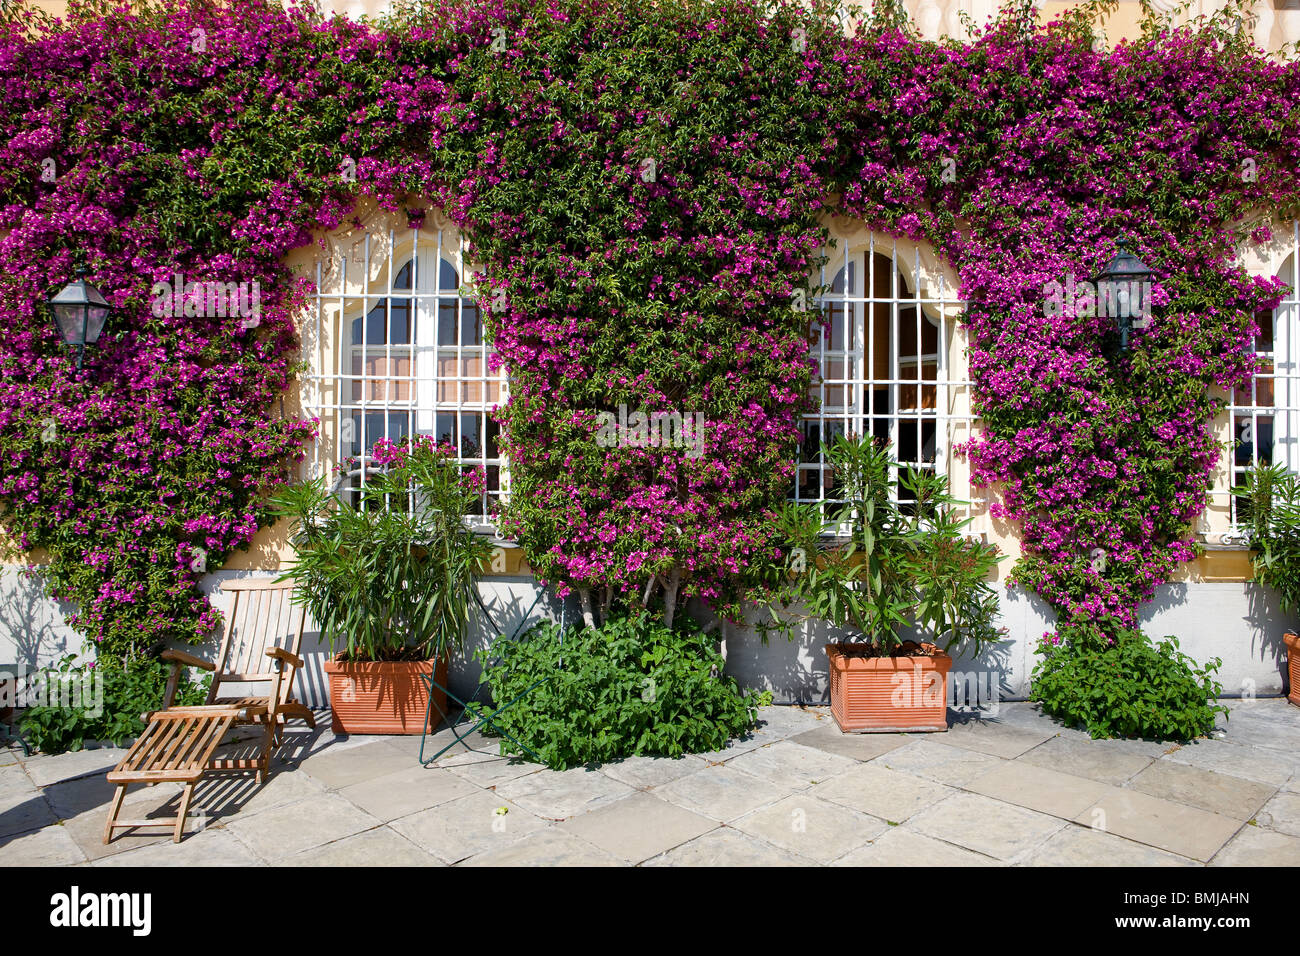 Italy, Liguria, house facade with flowers, bougainvillea and windows - Stock Image